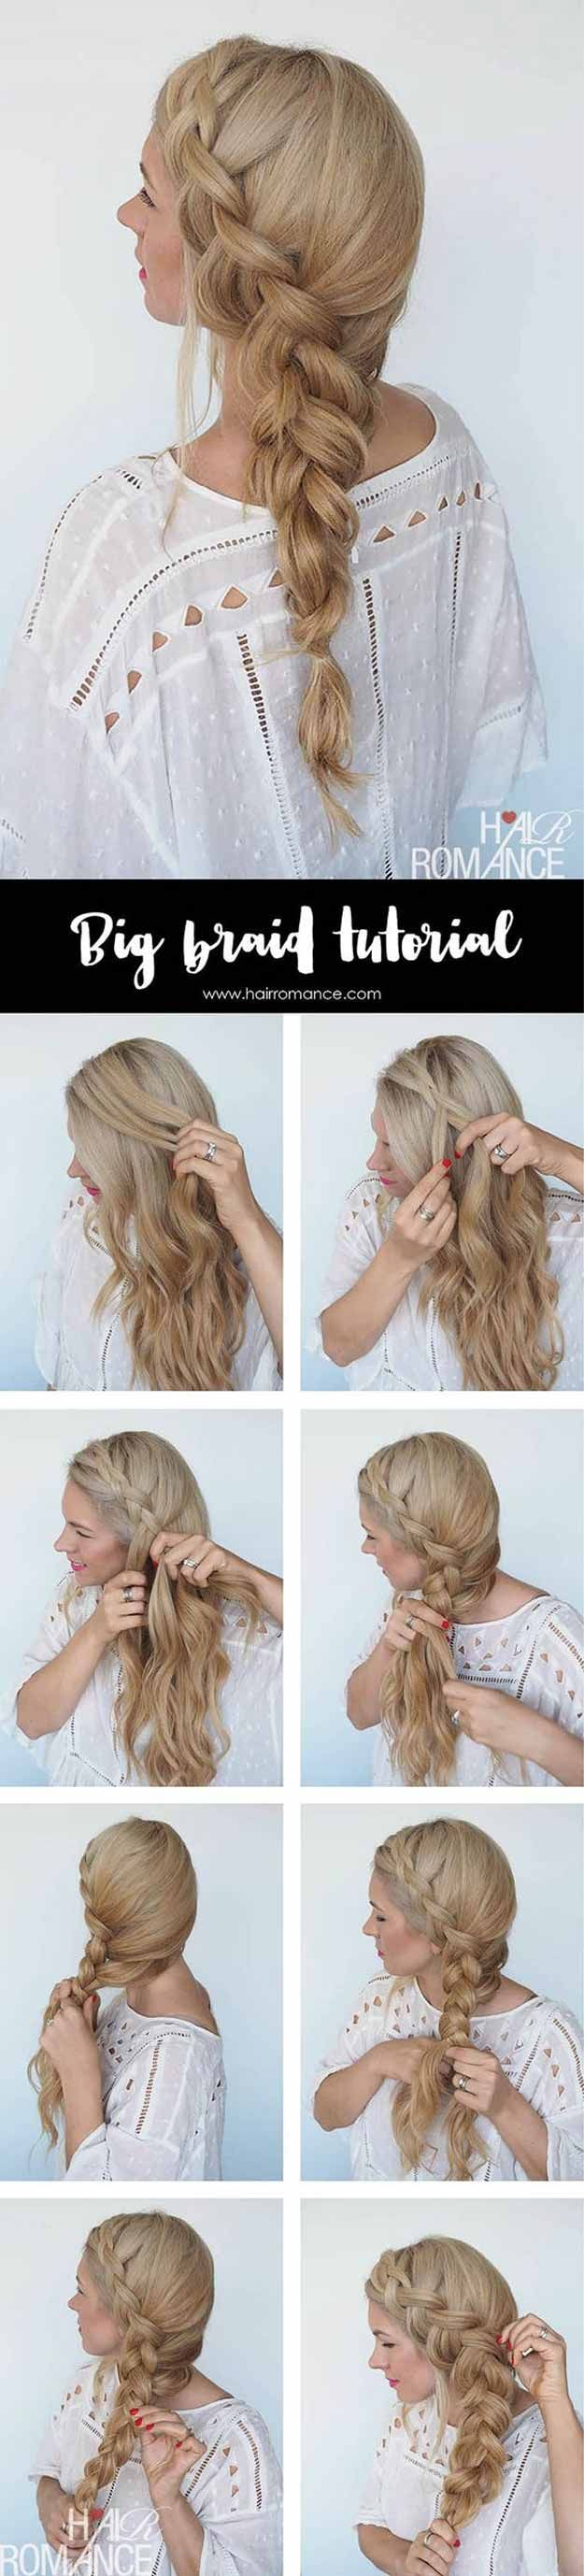 Best Pinterest Hair Tutorials - Big Braid Tutorial - Check Out These Super Cute And Super Simple Hairstyles From The Best Pinterest Hair Tutorials Including Styles Like Messy Buns And Half Up Half Down Hairdos. Dutch Braids Are Super Hot Right Now Too. These Are The Best Hairstyle Tutorials Ideas On Pinterest Right Now. Easy Hair Up And Hair Down Ideas For Short Hair, Long Hair, and Medium Length Hair. Hair Tutorials For Braids, For Curls, And Step By Step Tutorials For Prom, A Wedding, Or…